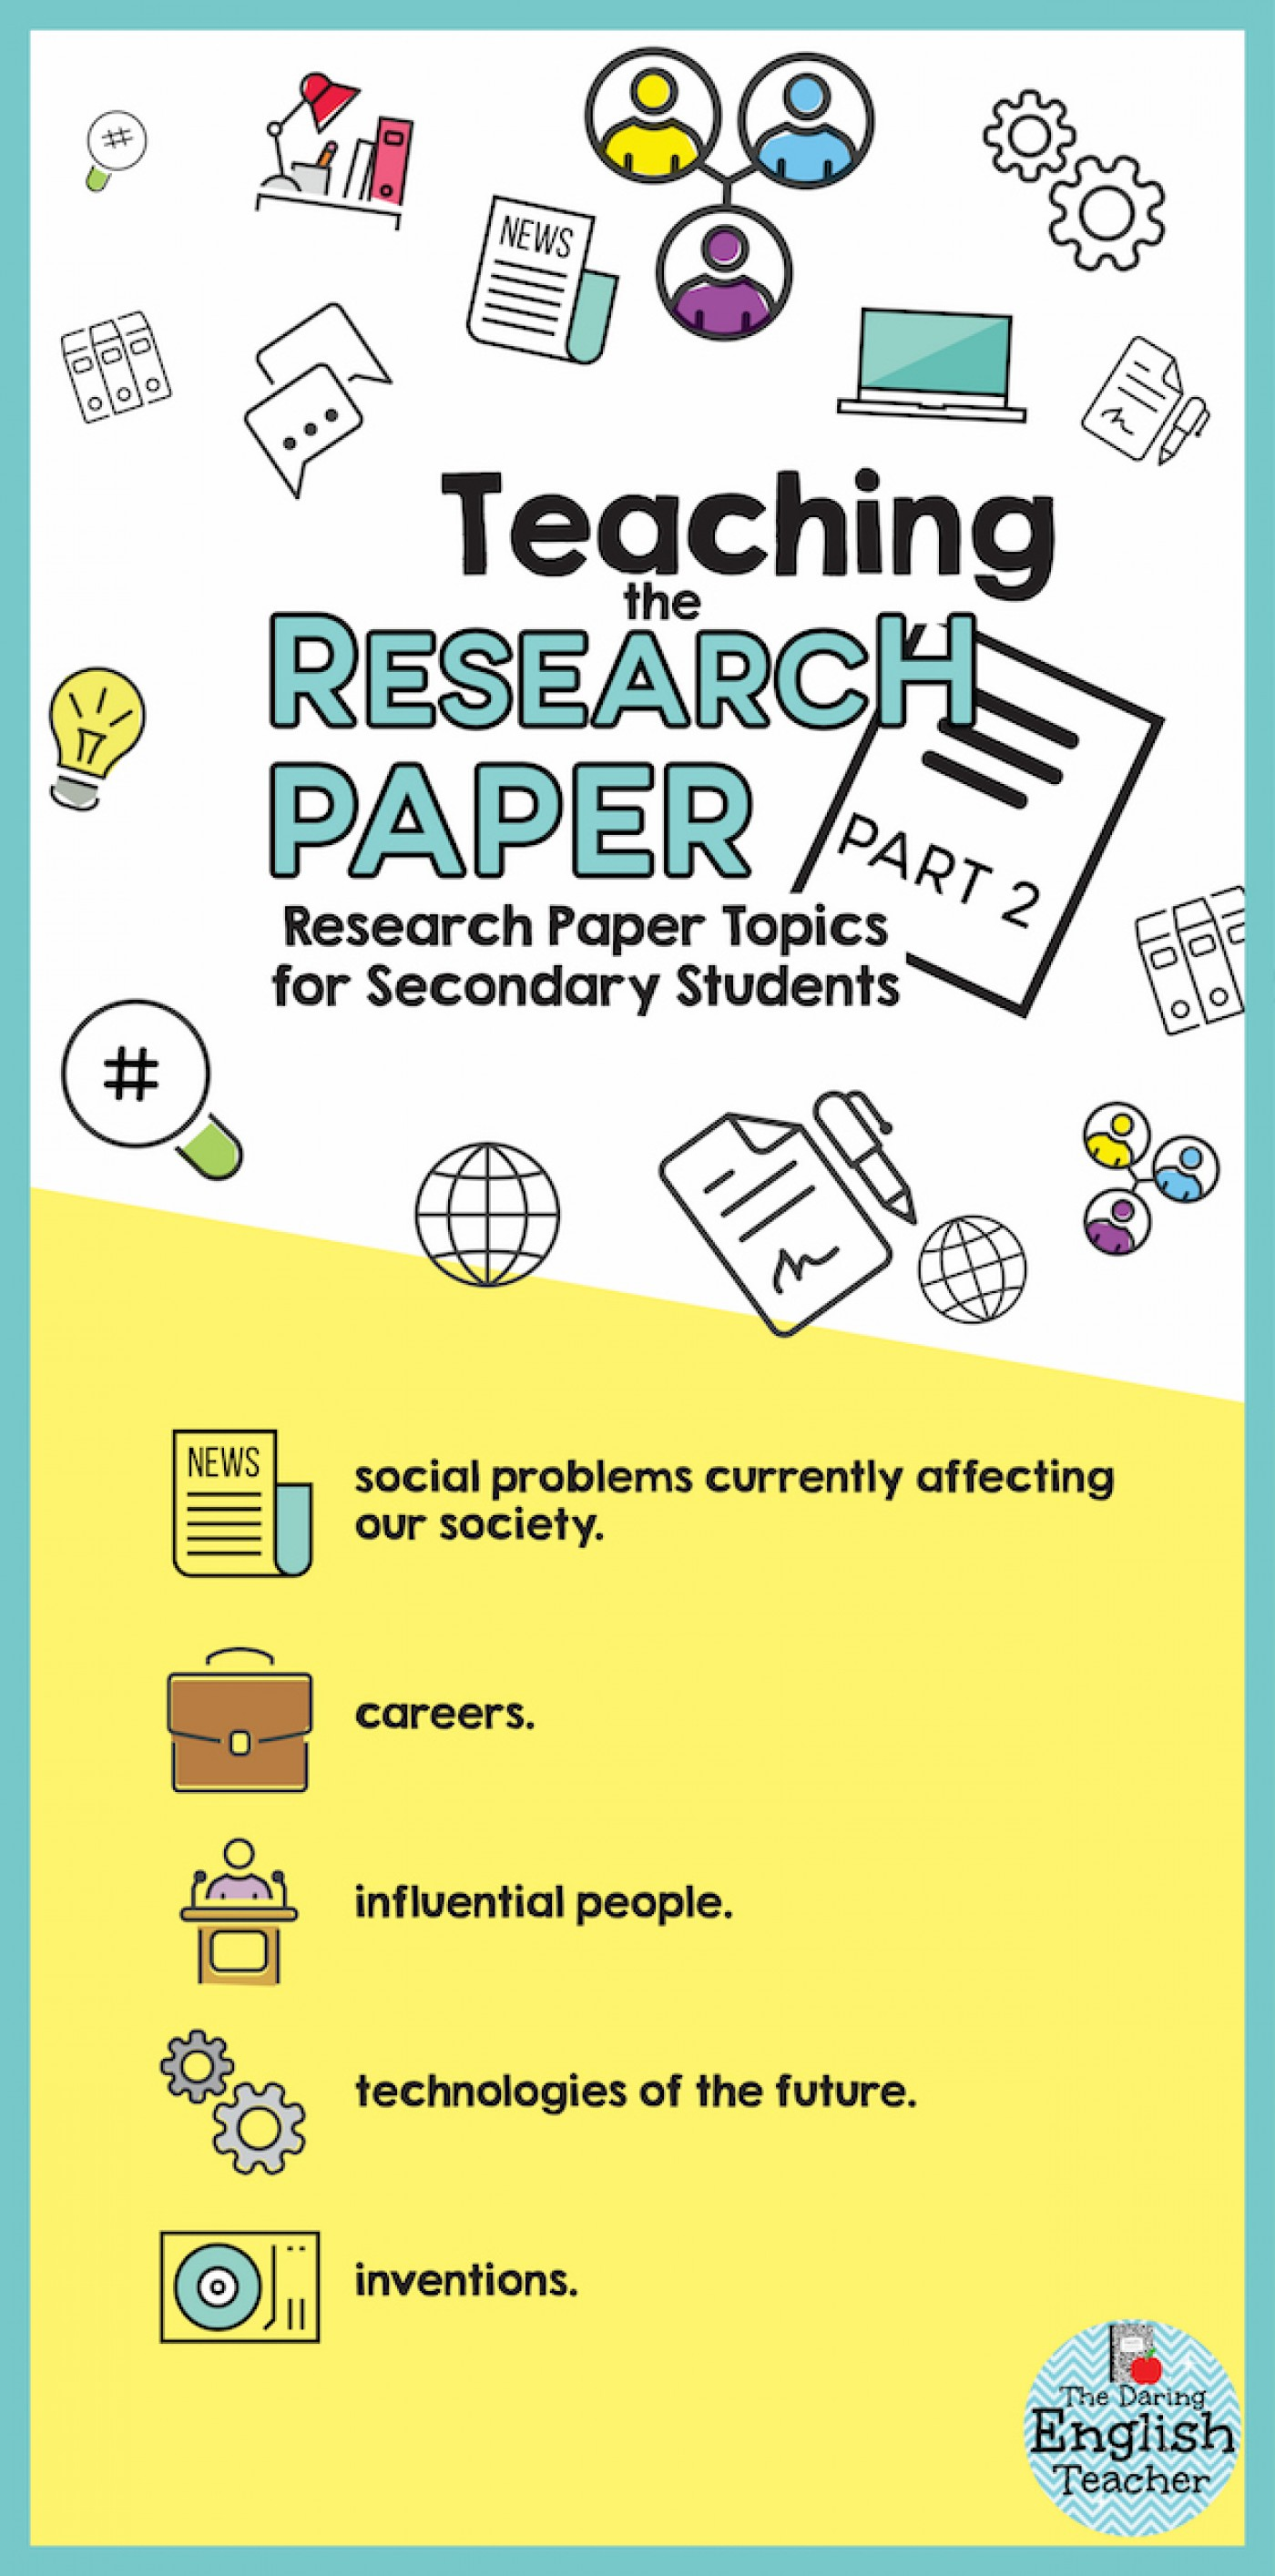 012 Research Paper Infographic2bp22b2 Topics High Incredible School Biology Science Seniors 1400